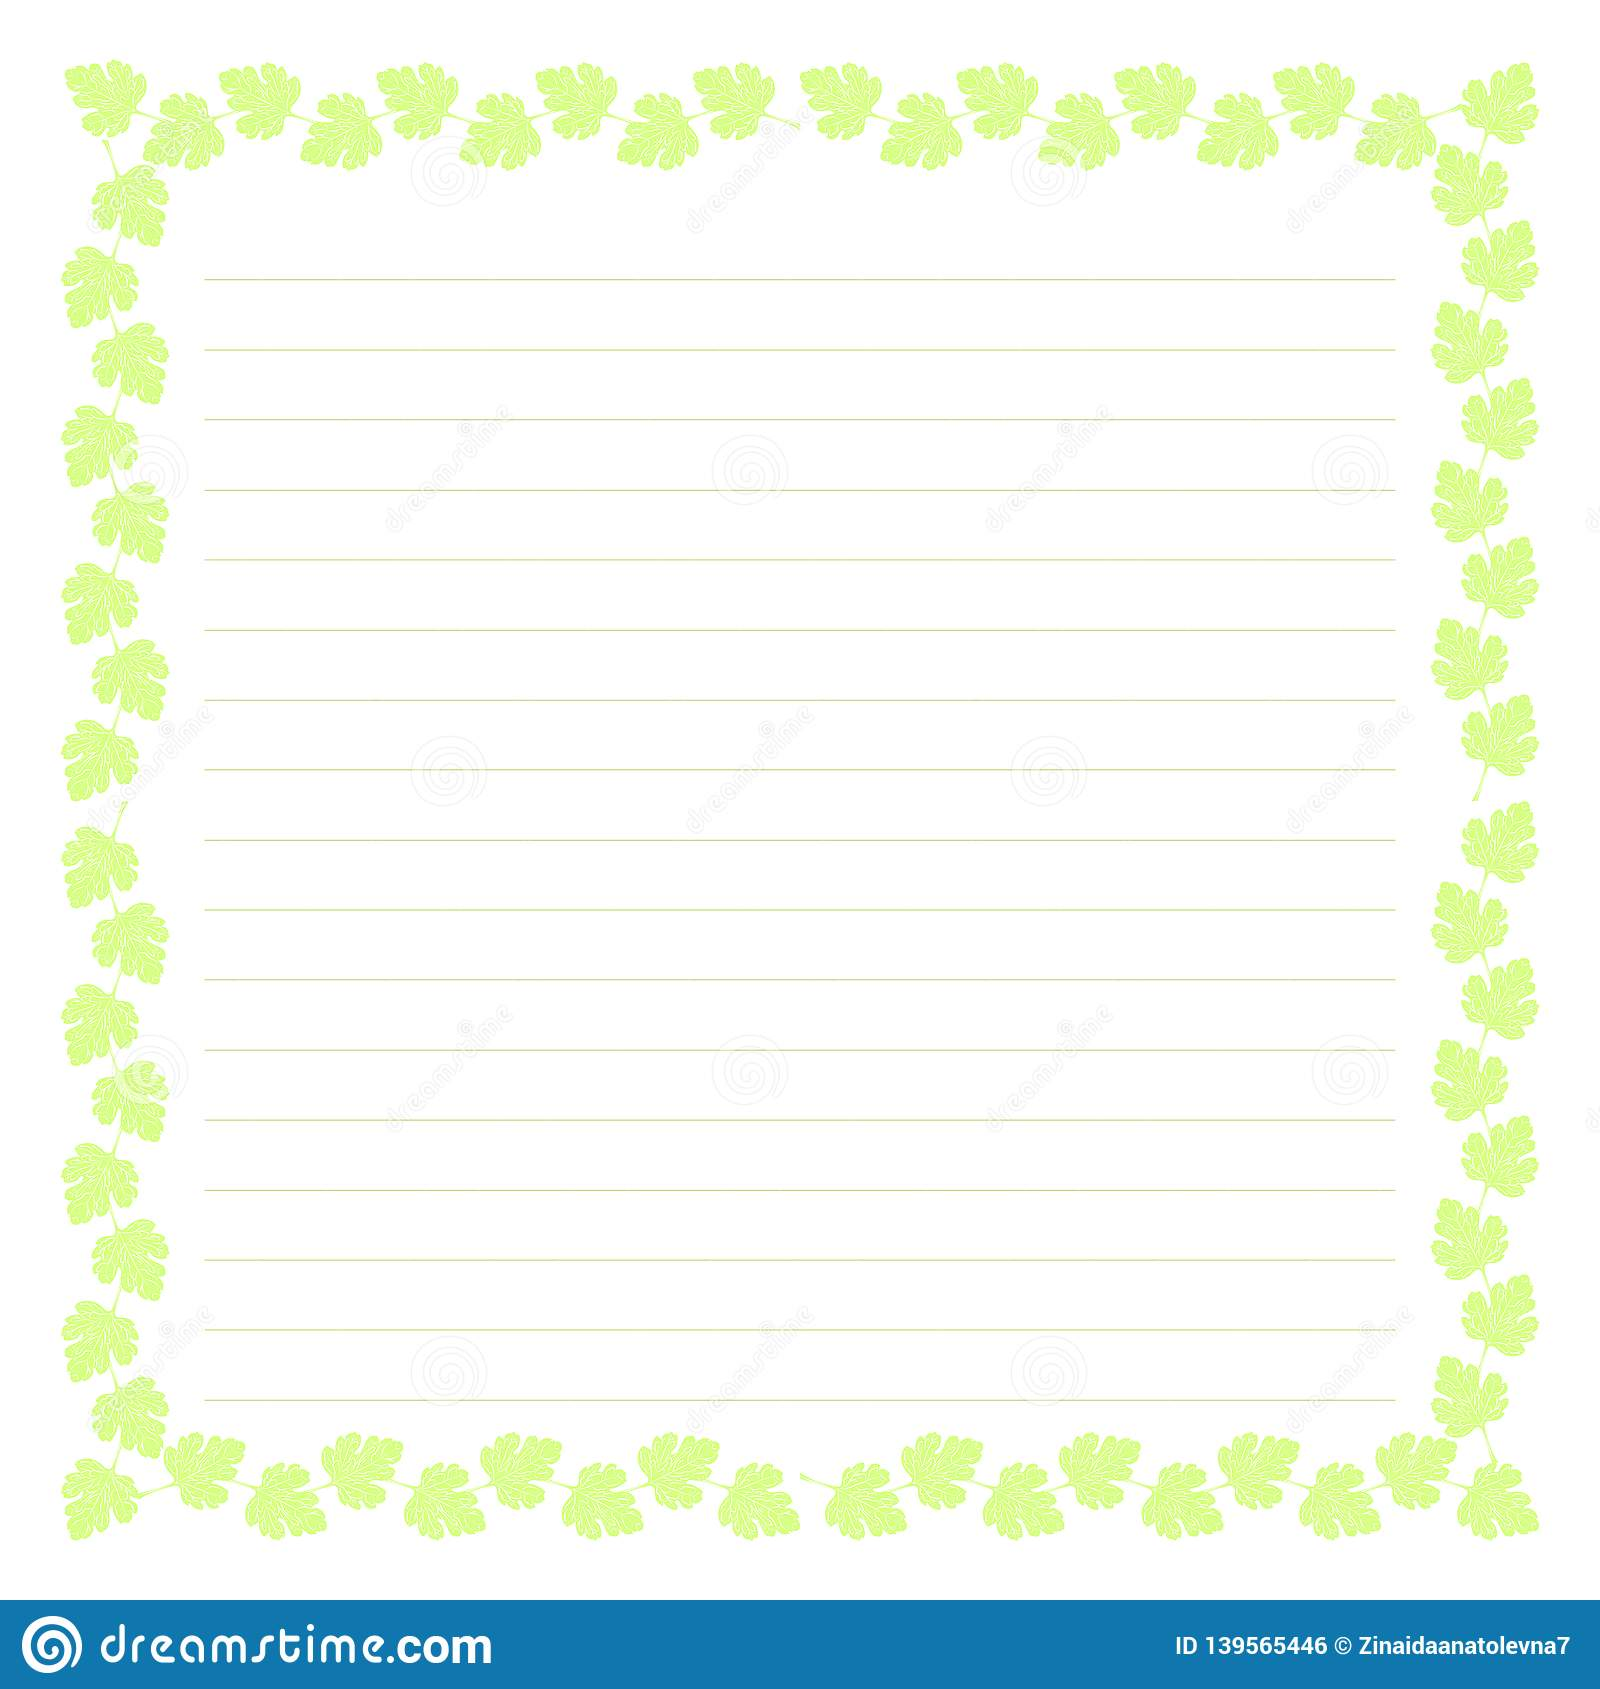 Blank Planner With Illustration Sheet Background For